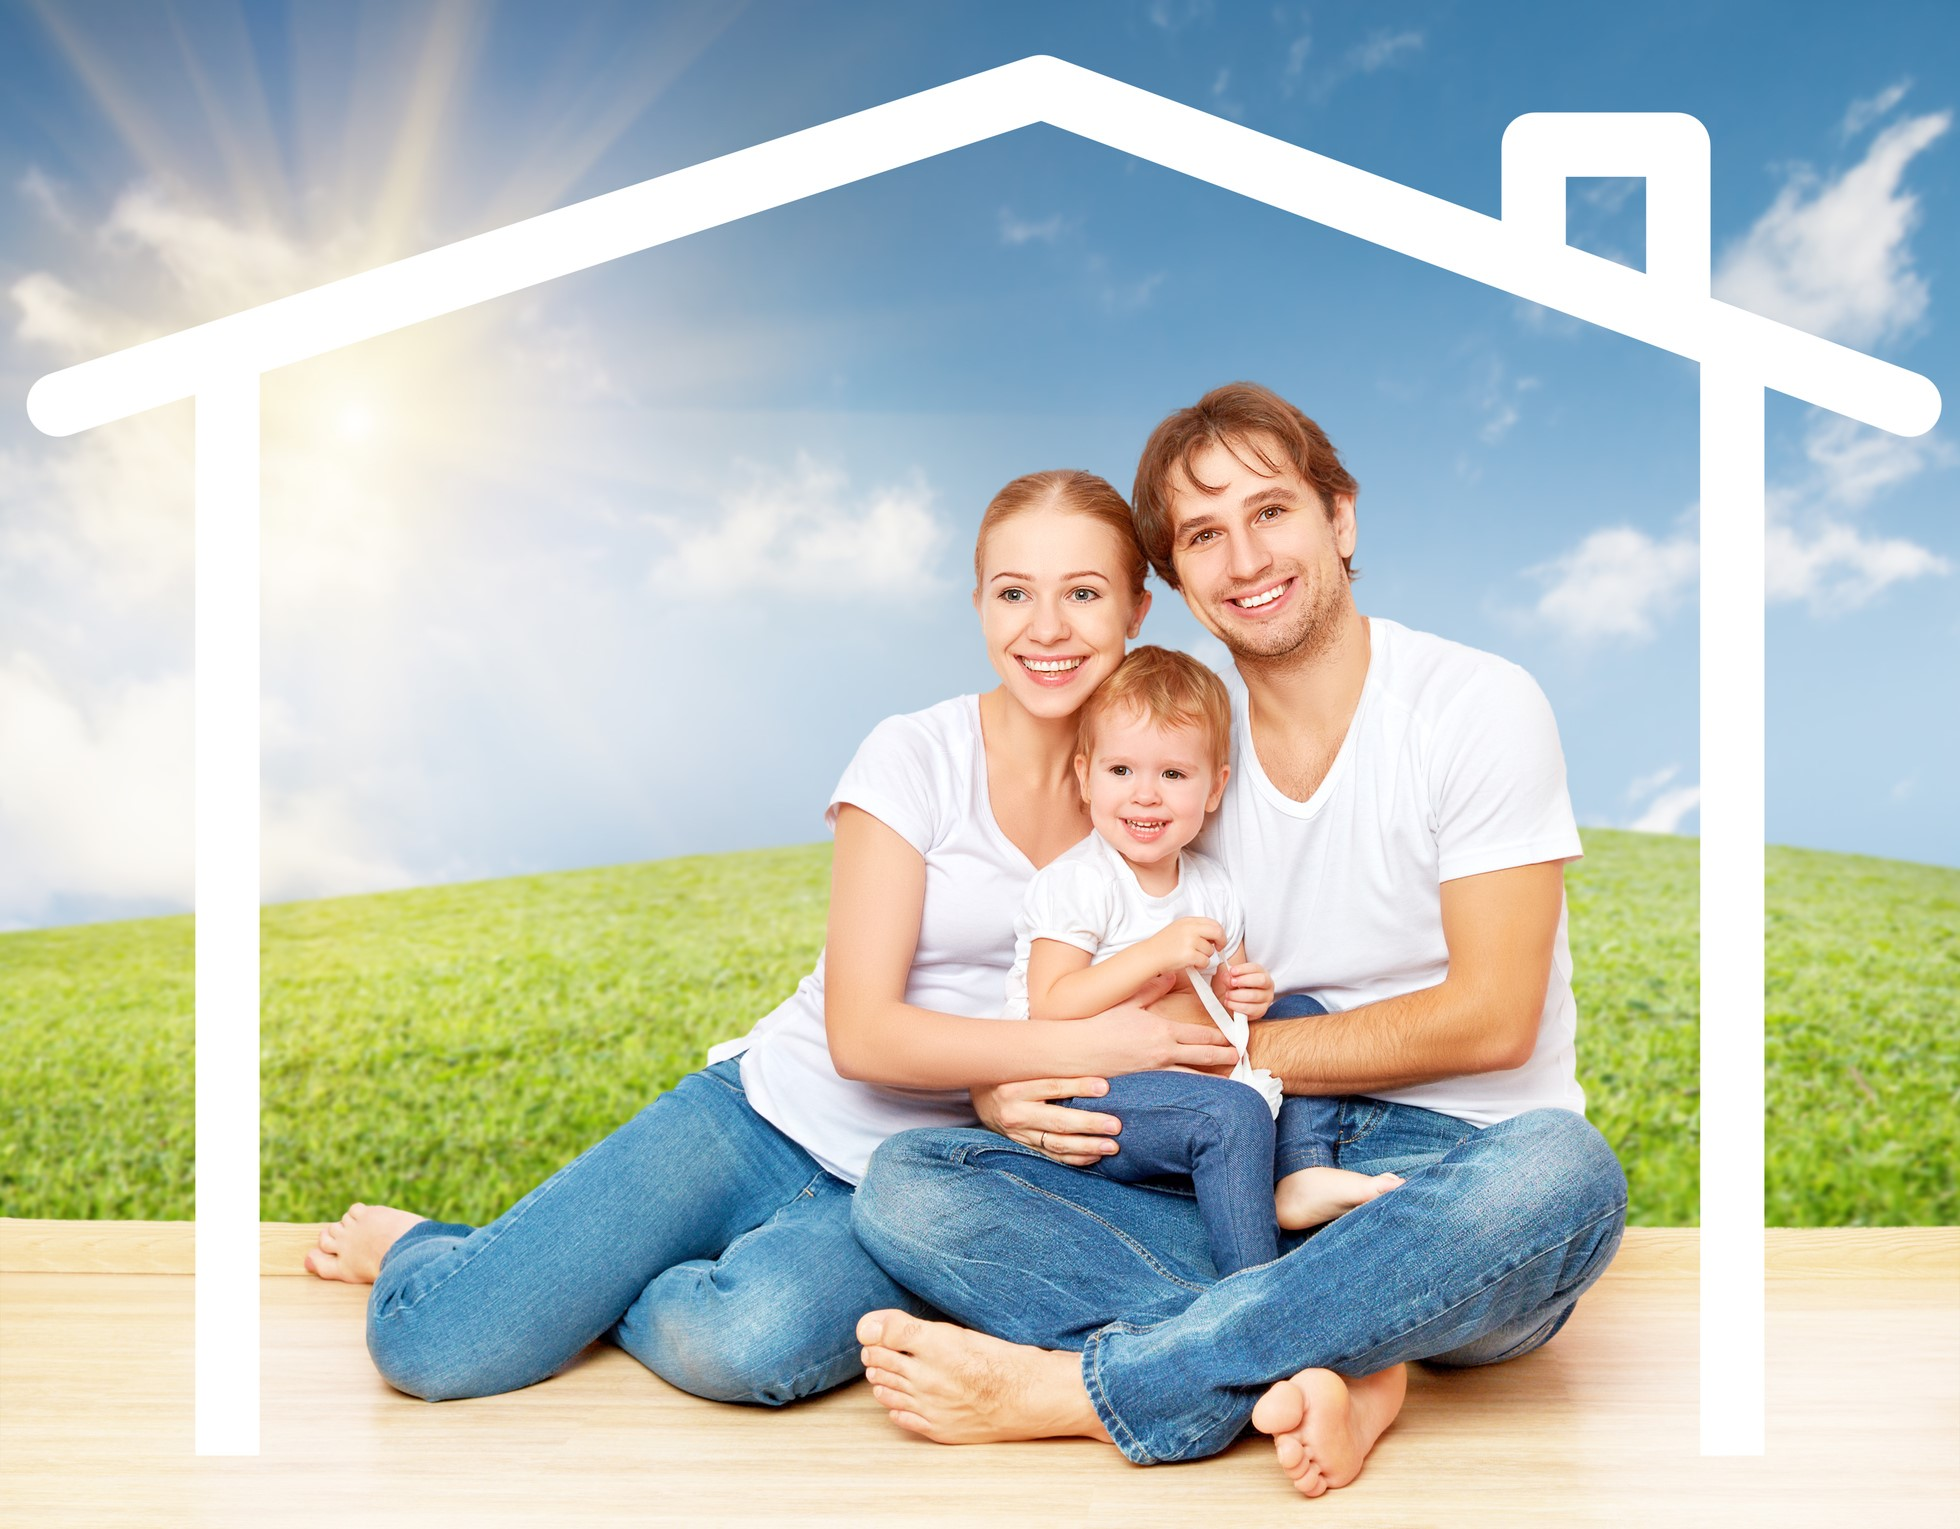 5 Homeowners Insurance Myths that Could Hurt New Families on avanteinsurance.com